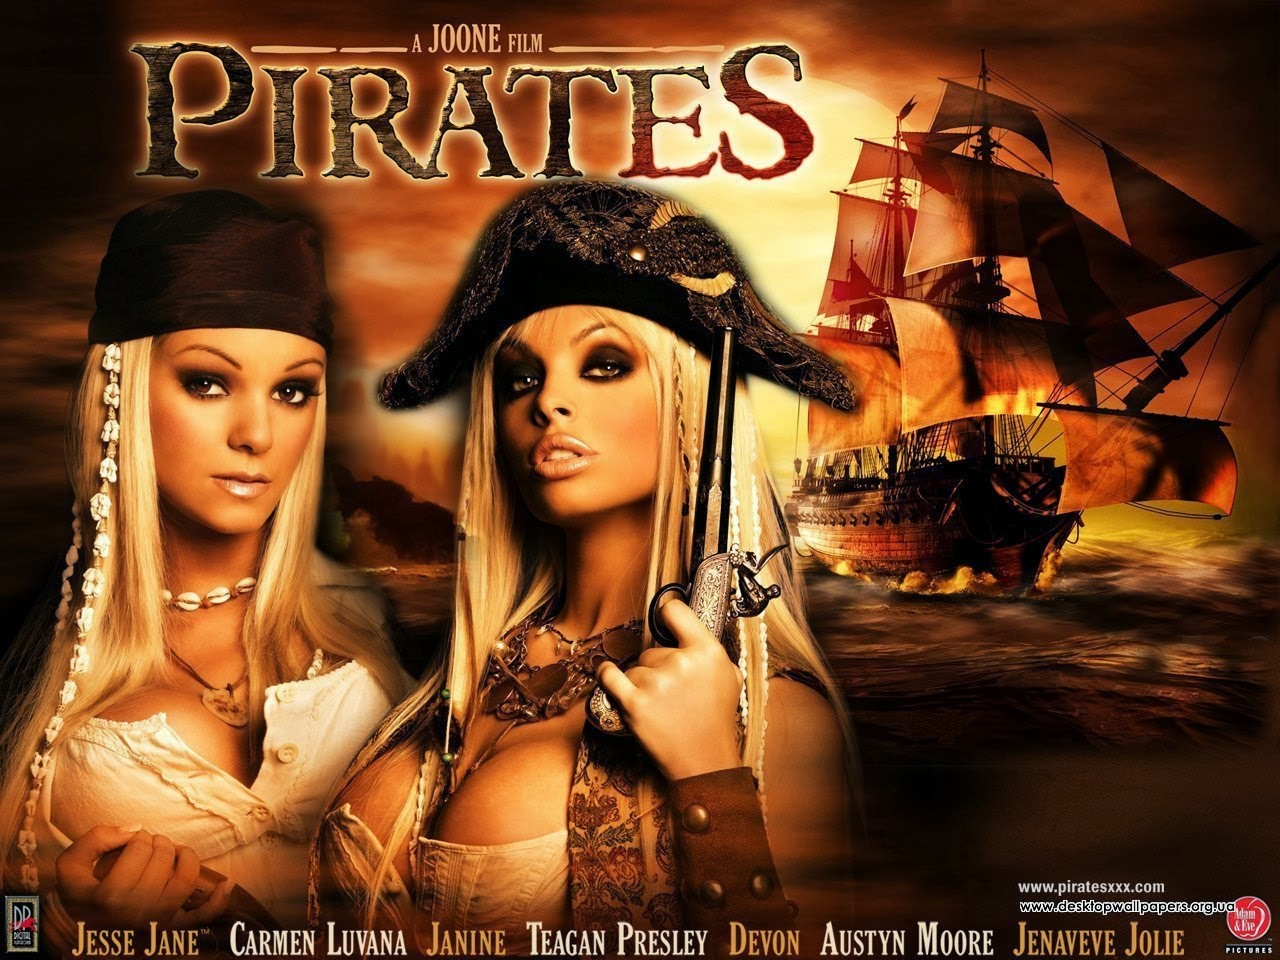 Pirates porno streaming movie photo 811